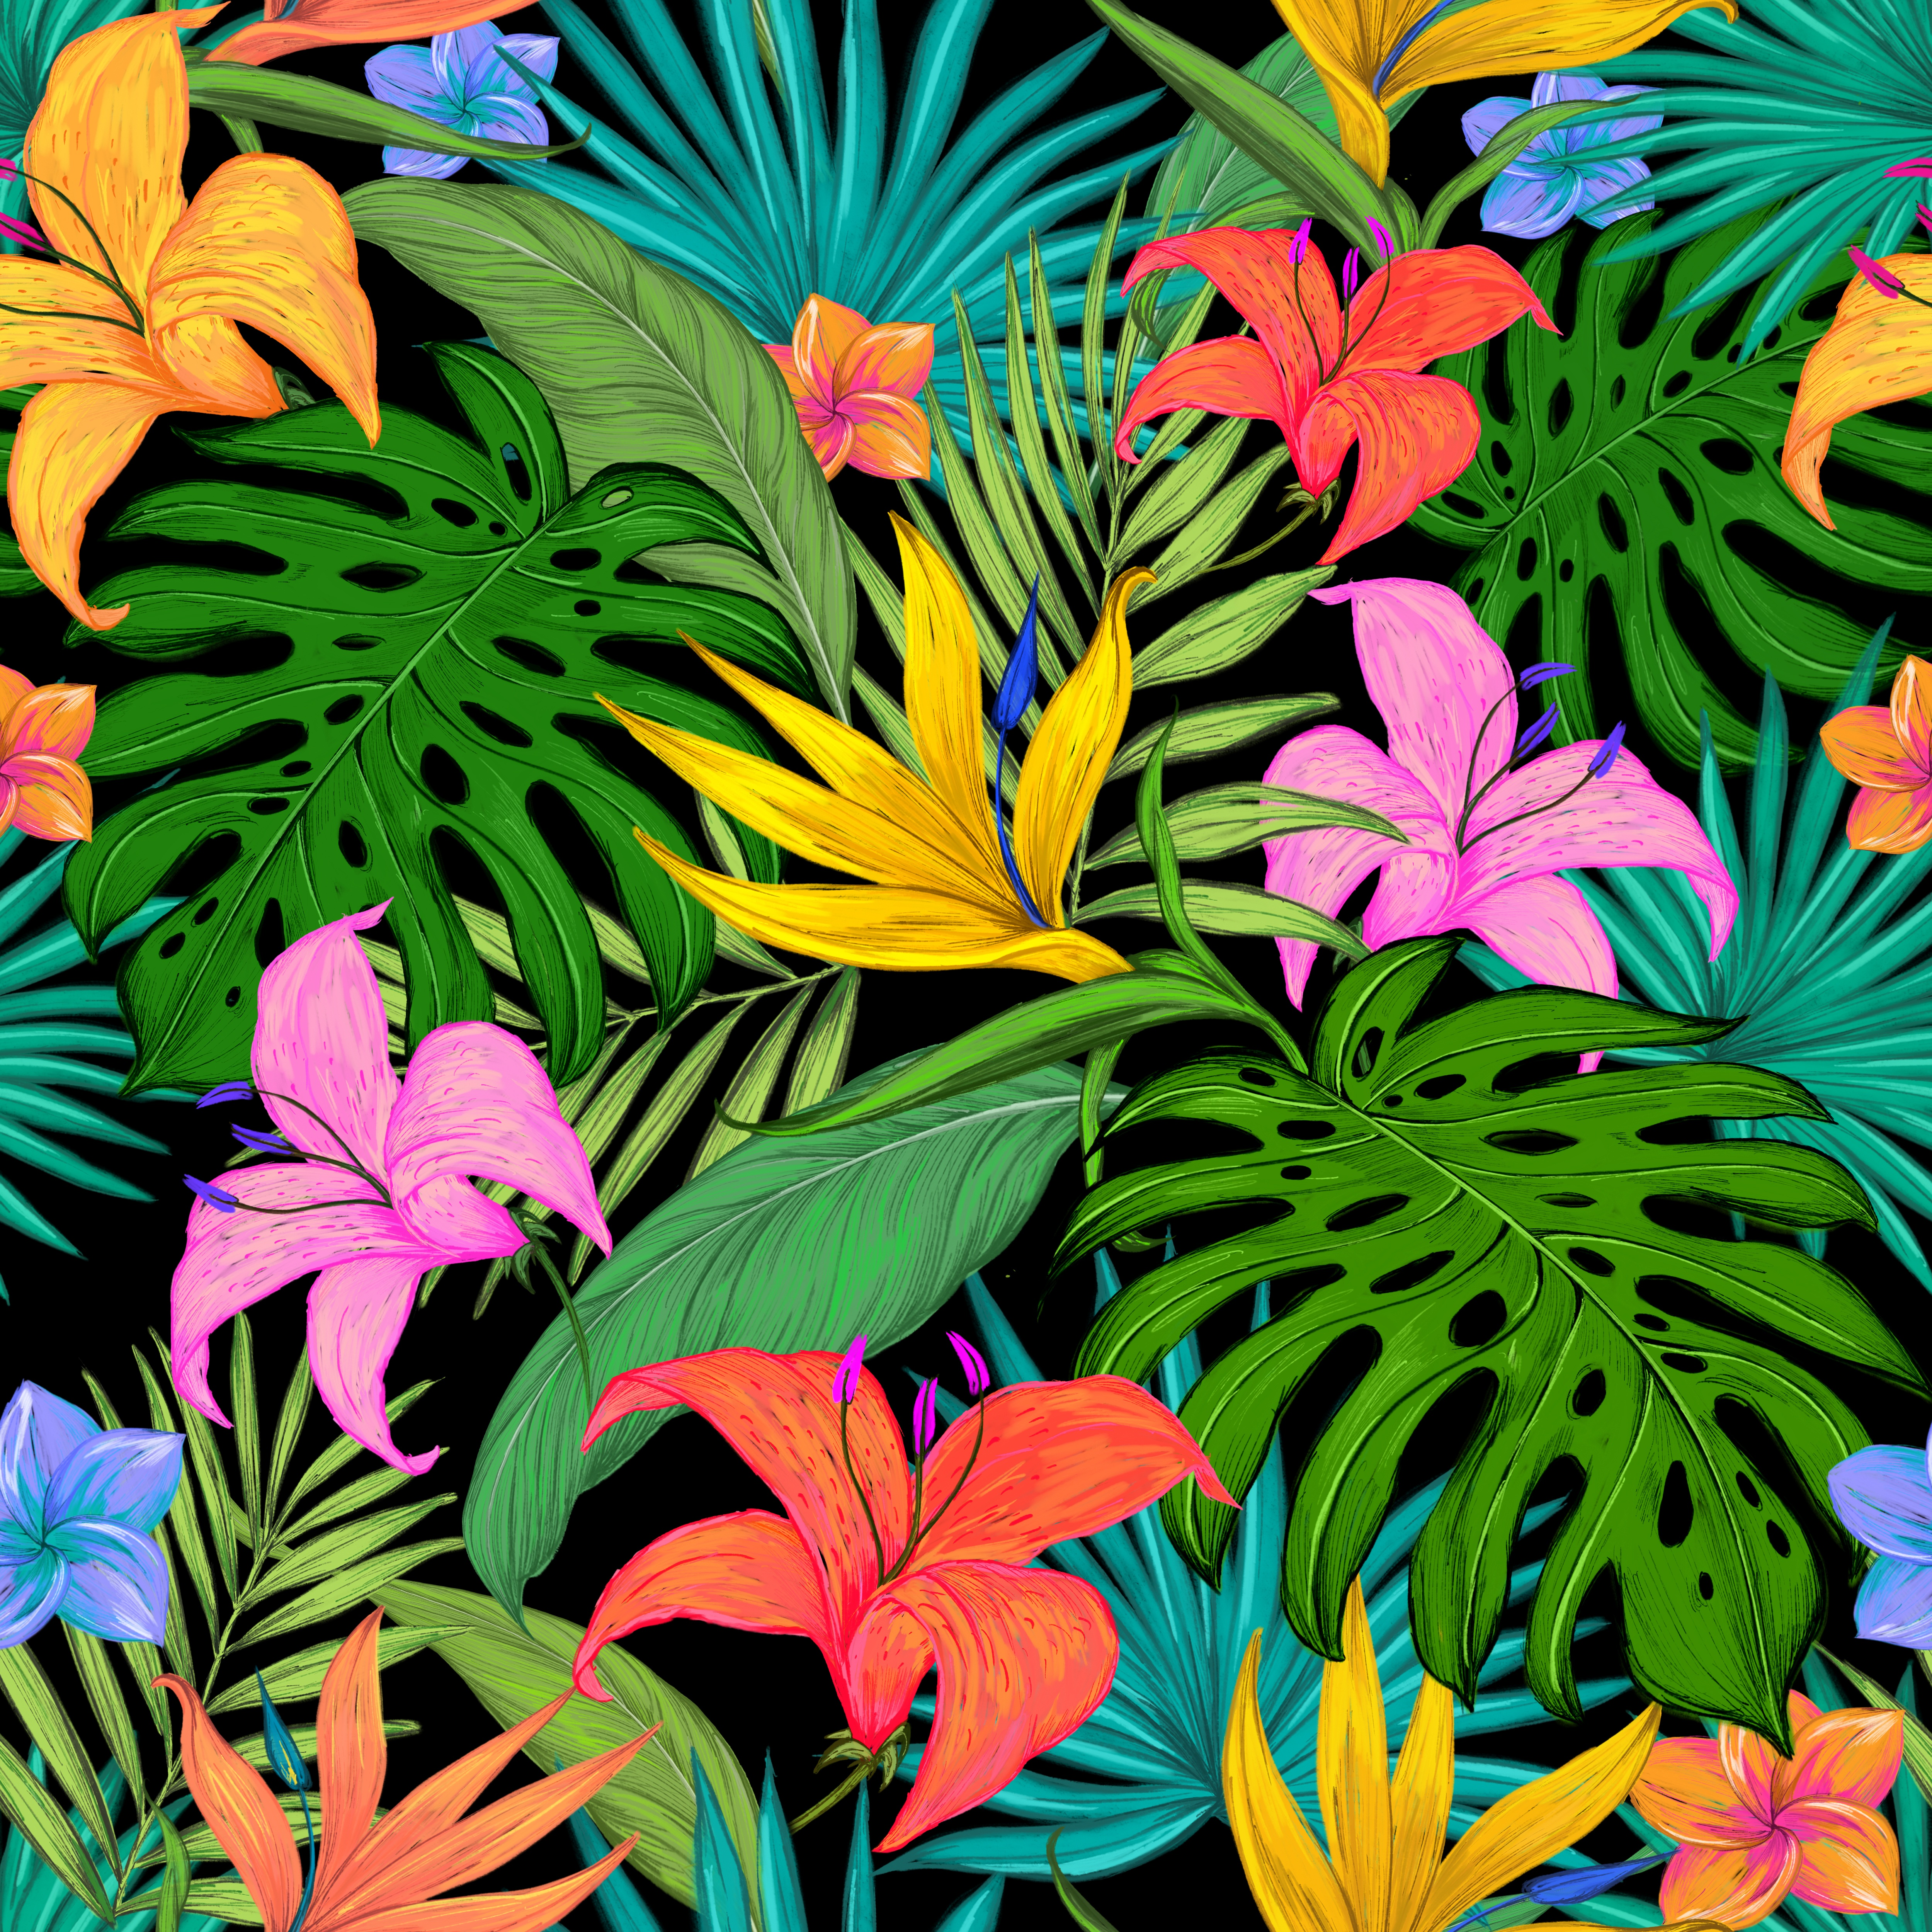 67335 download wallpaper Flowers, Leaves, Palms, Lilies, Pattern, Texture, Textures, Color, Tropical, Coloured screensavers and pictures for free